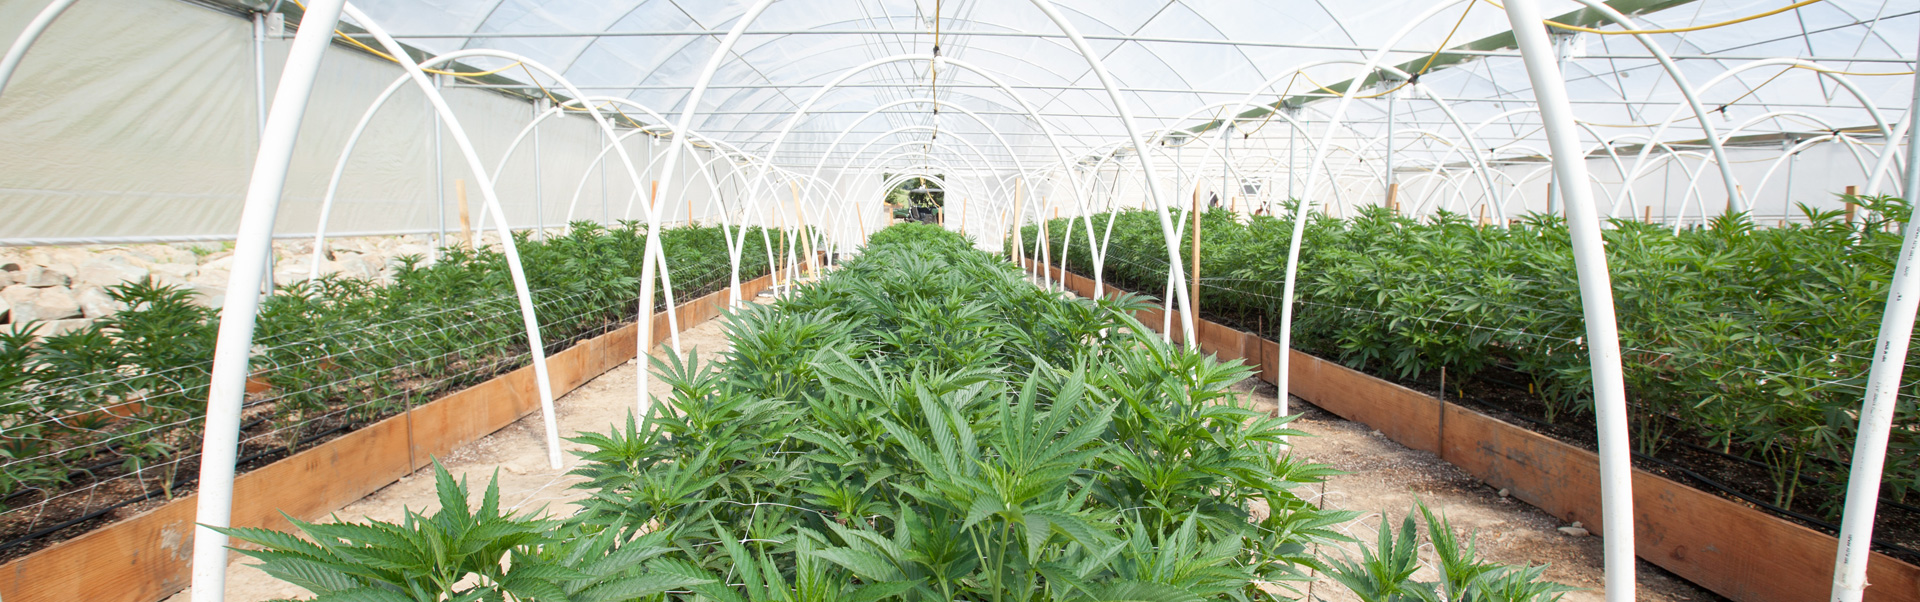 for cannabis cultivation